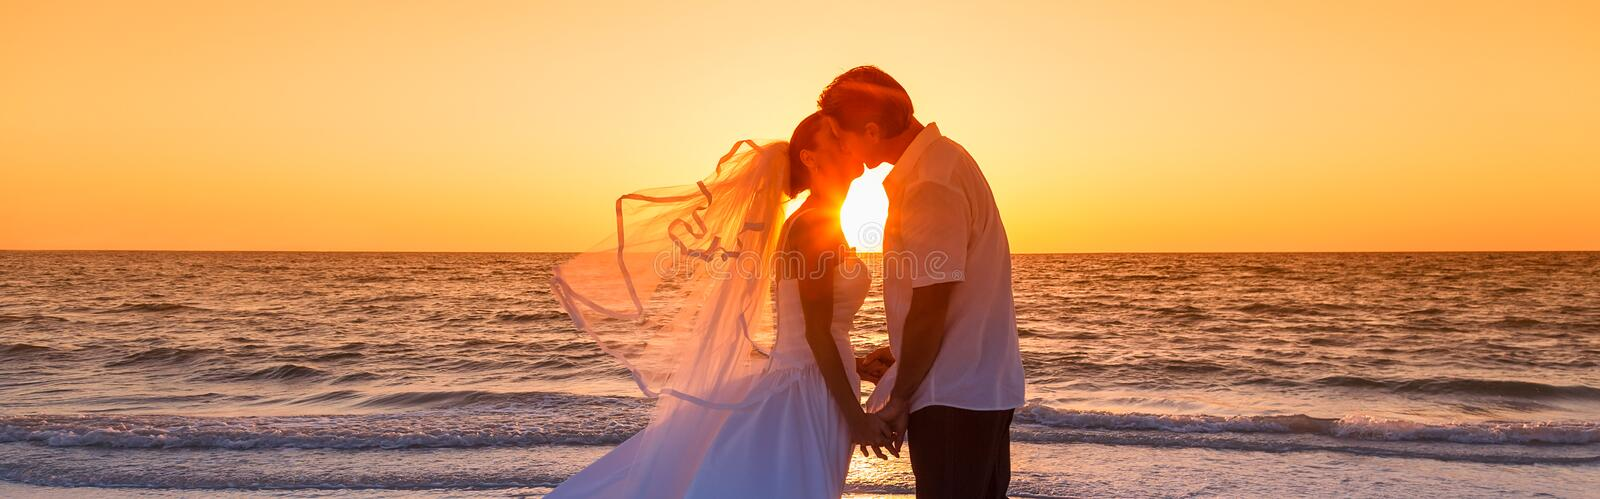 Bride and Groom Married Couple Sunset Beach Wedding Panorama. Married couple, bride and groom, kissing at sunset or sunrise on a beautiful tropical beach wedding stock images